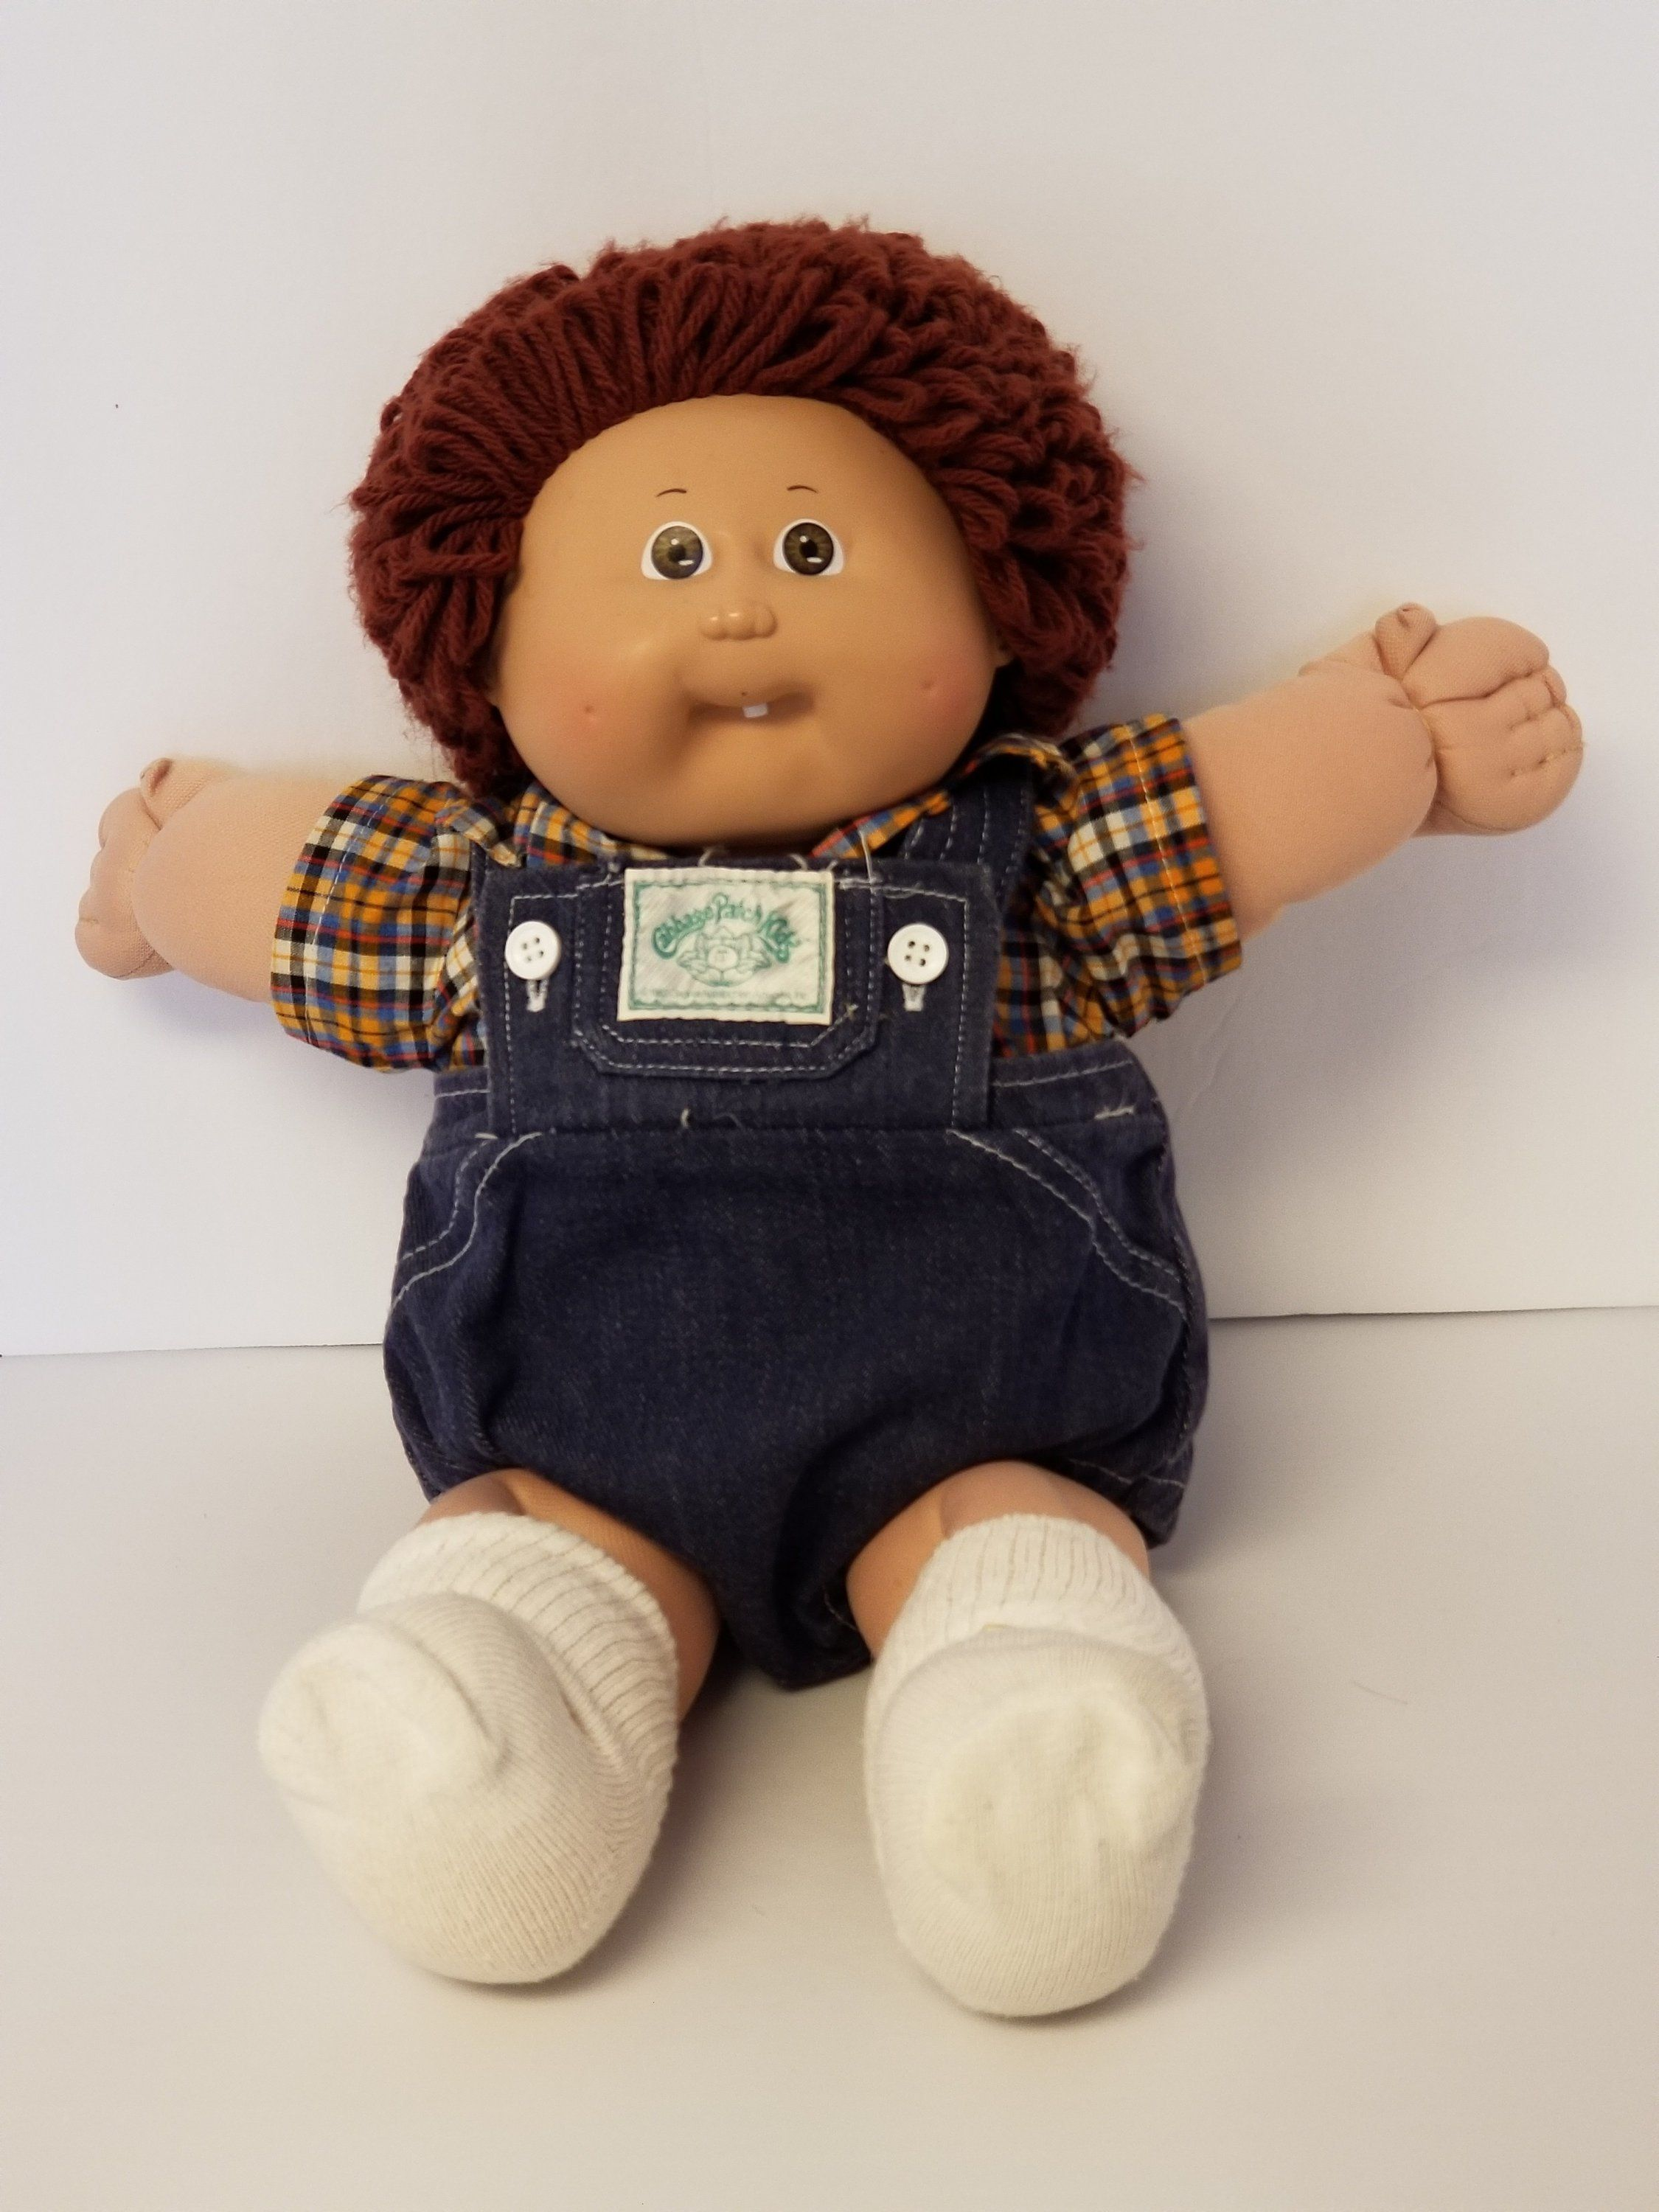 Pin by AllAboutVintageStore on 80s Girl Happiness in 2020 | Cabbage patch  kids, Cabbage patch kids costume, Cabbage patch dolls